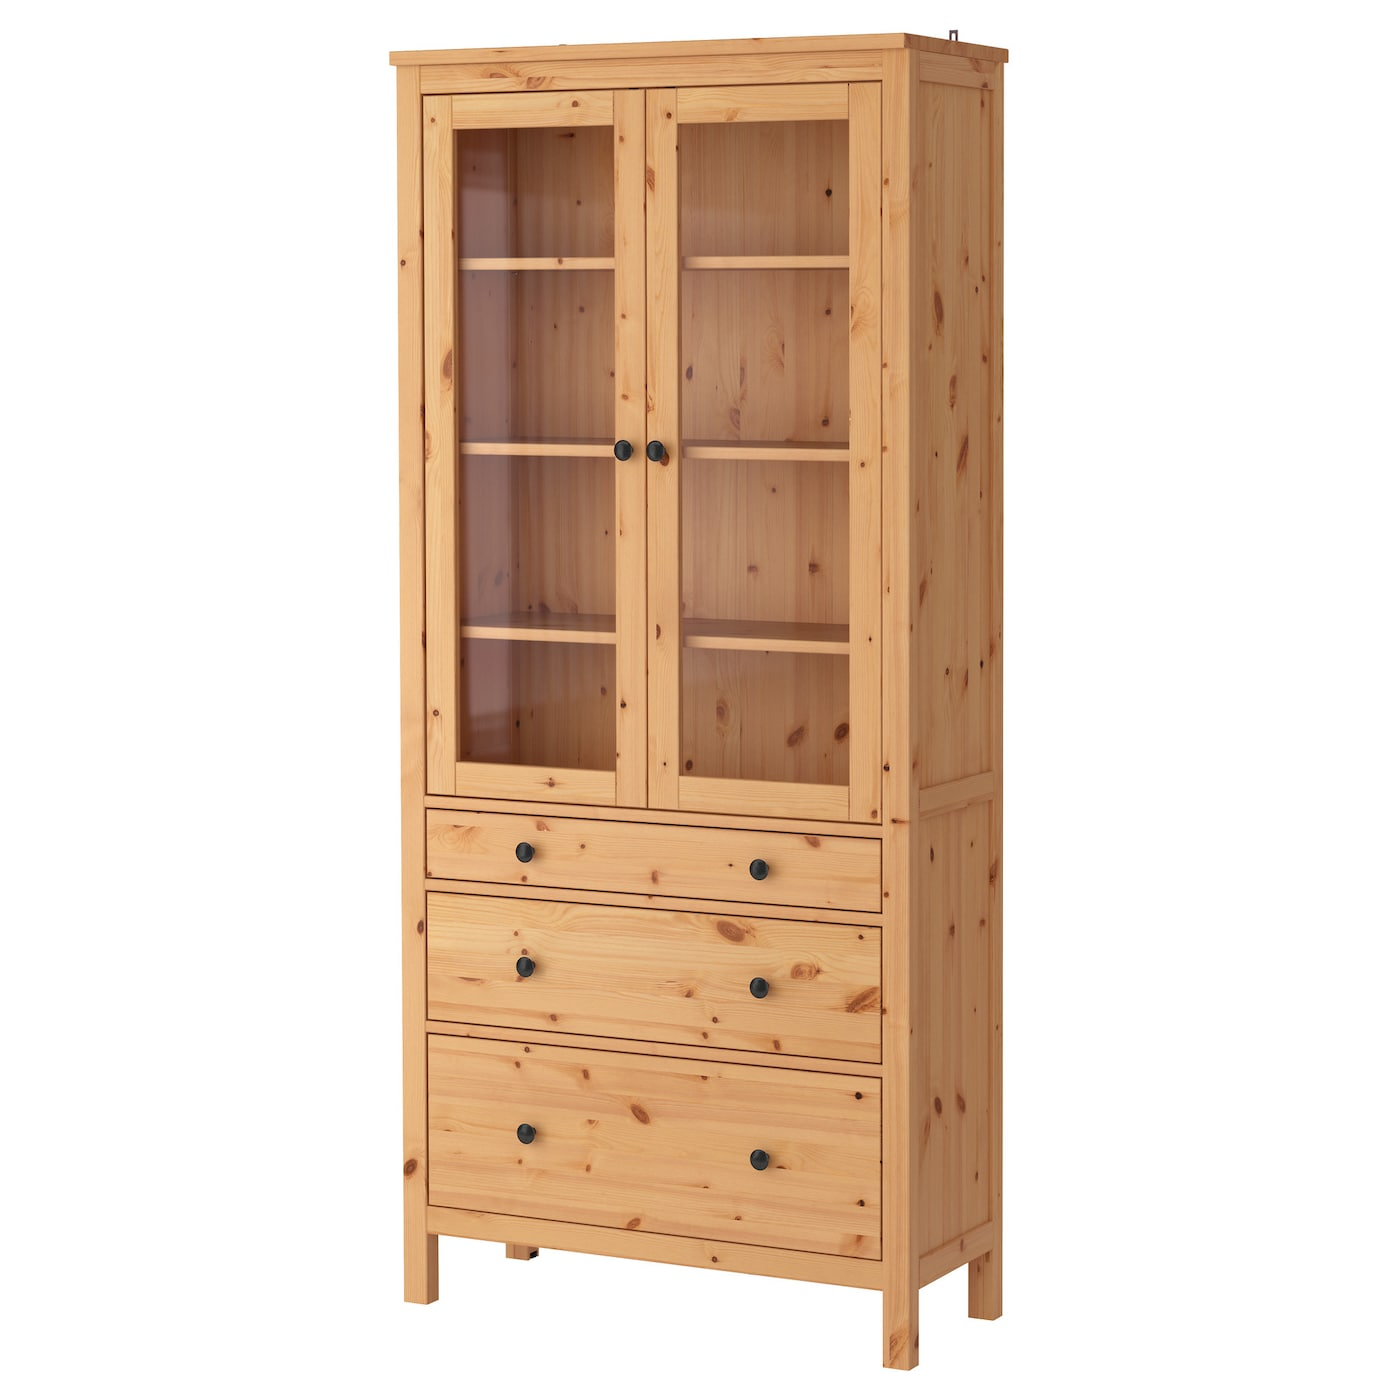 Ikea Aneboda Kommode Neupreis ~ IKEA HEMNES glass door cabinet with 3 drawers Solid wood has a natural